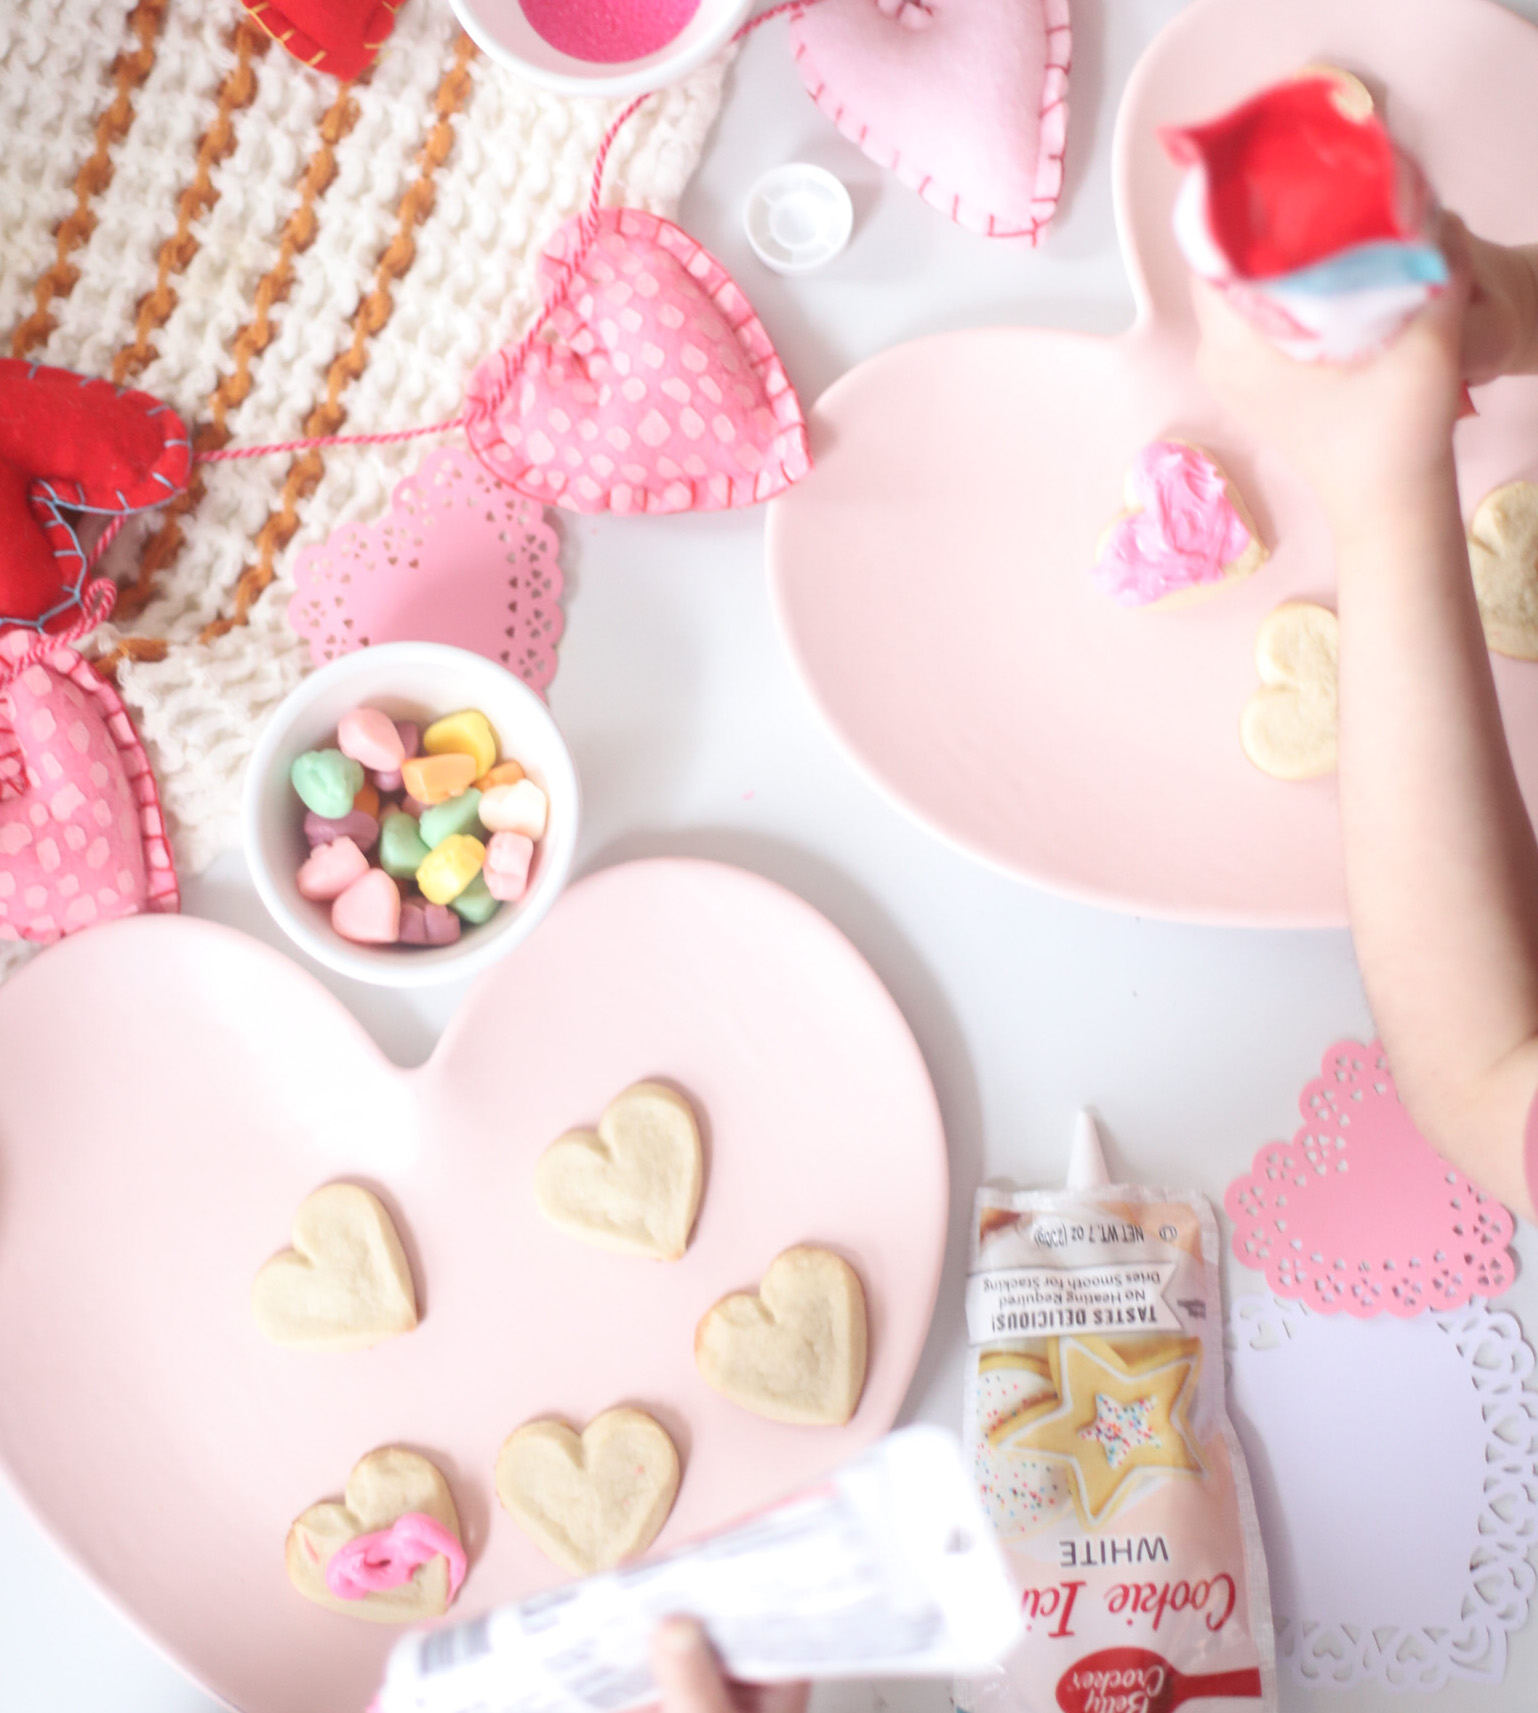 Decorating Icing or Cookie Icing pouch